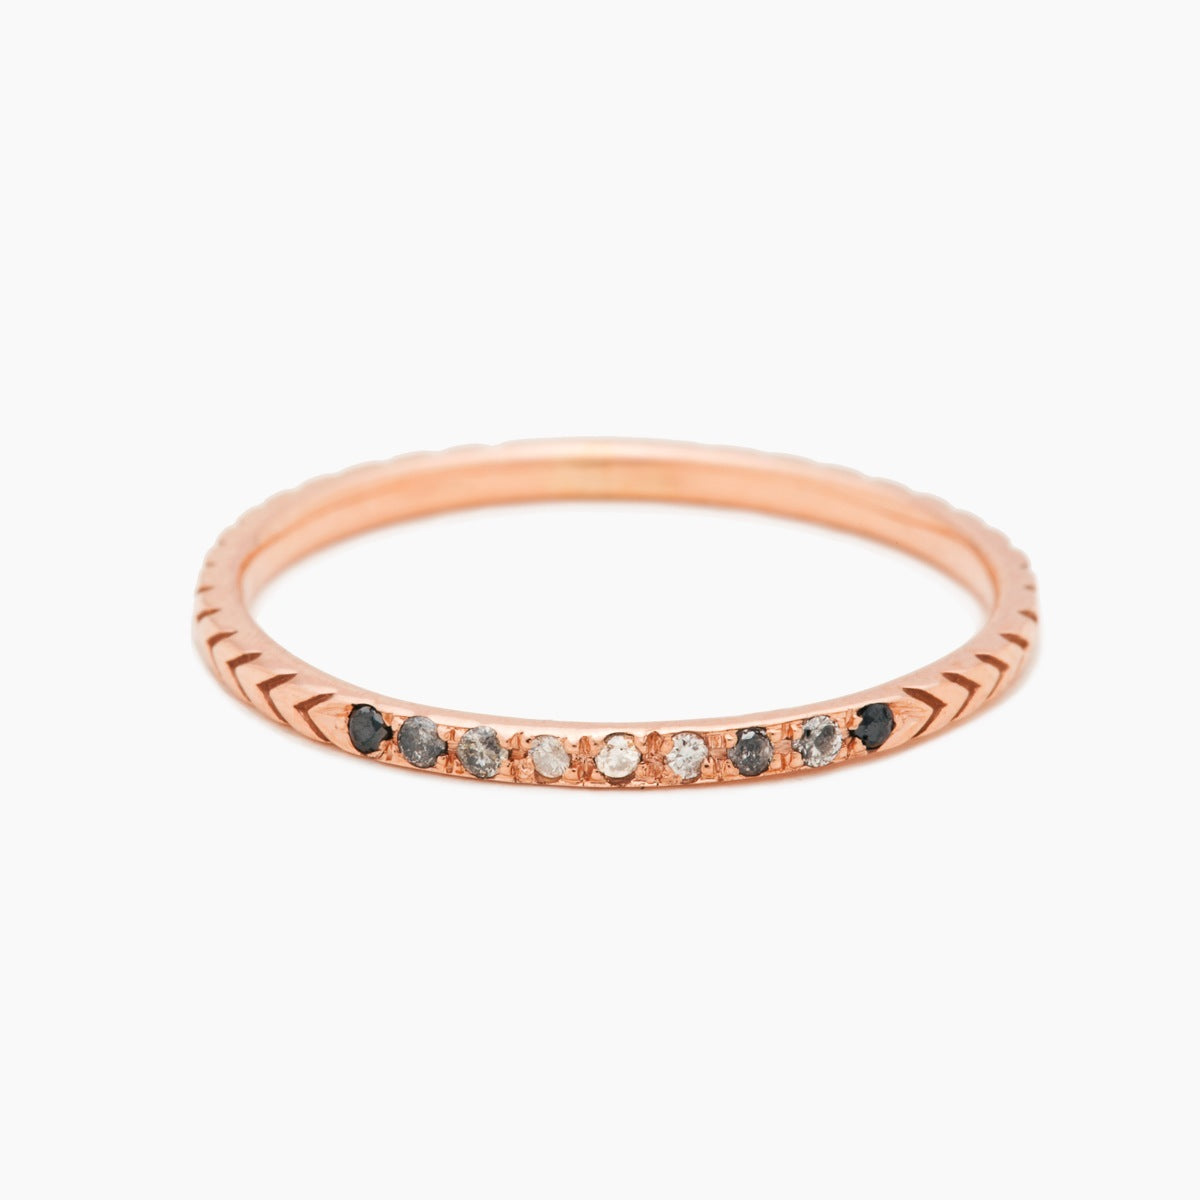 Gradient Petite Pave Arrows Ring